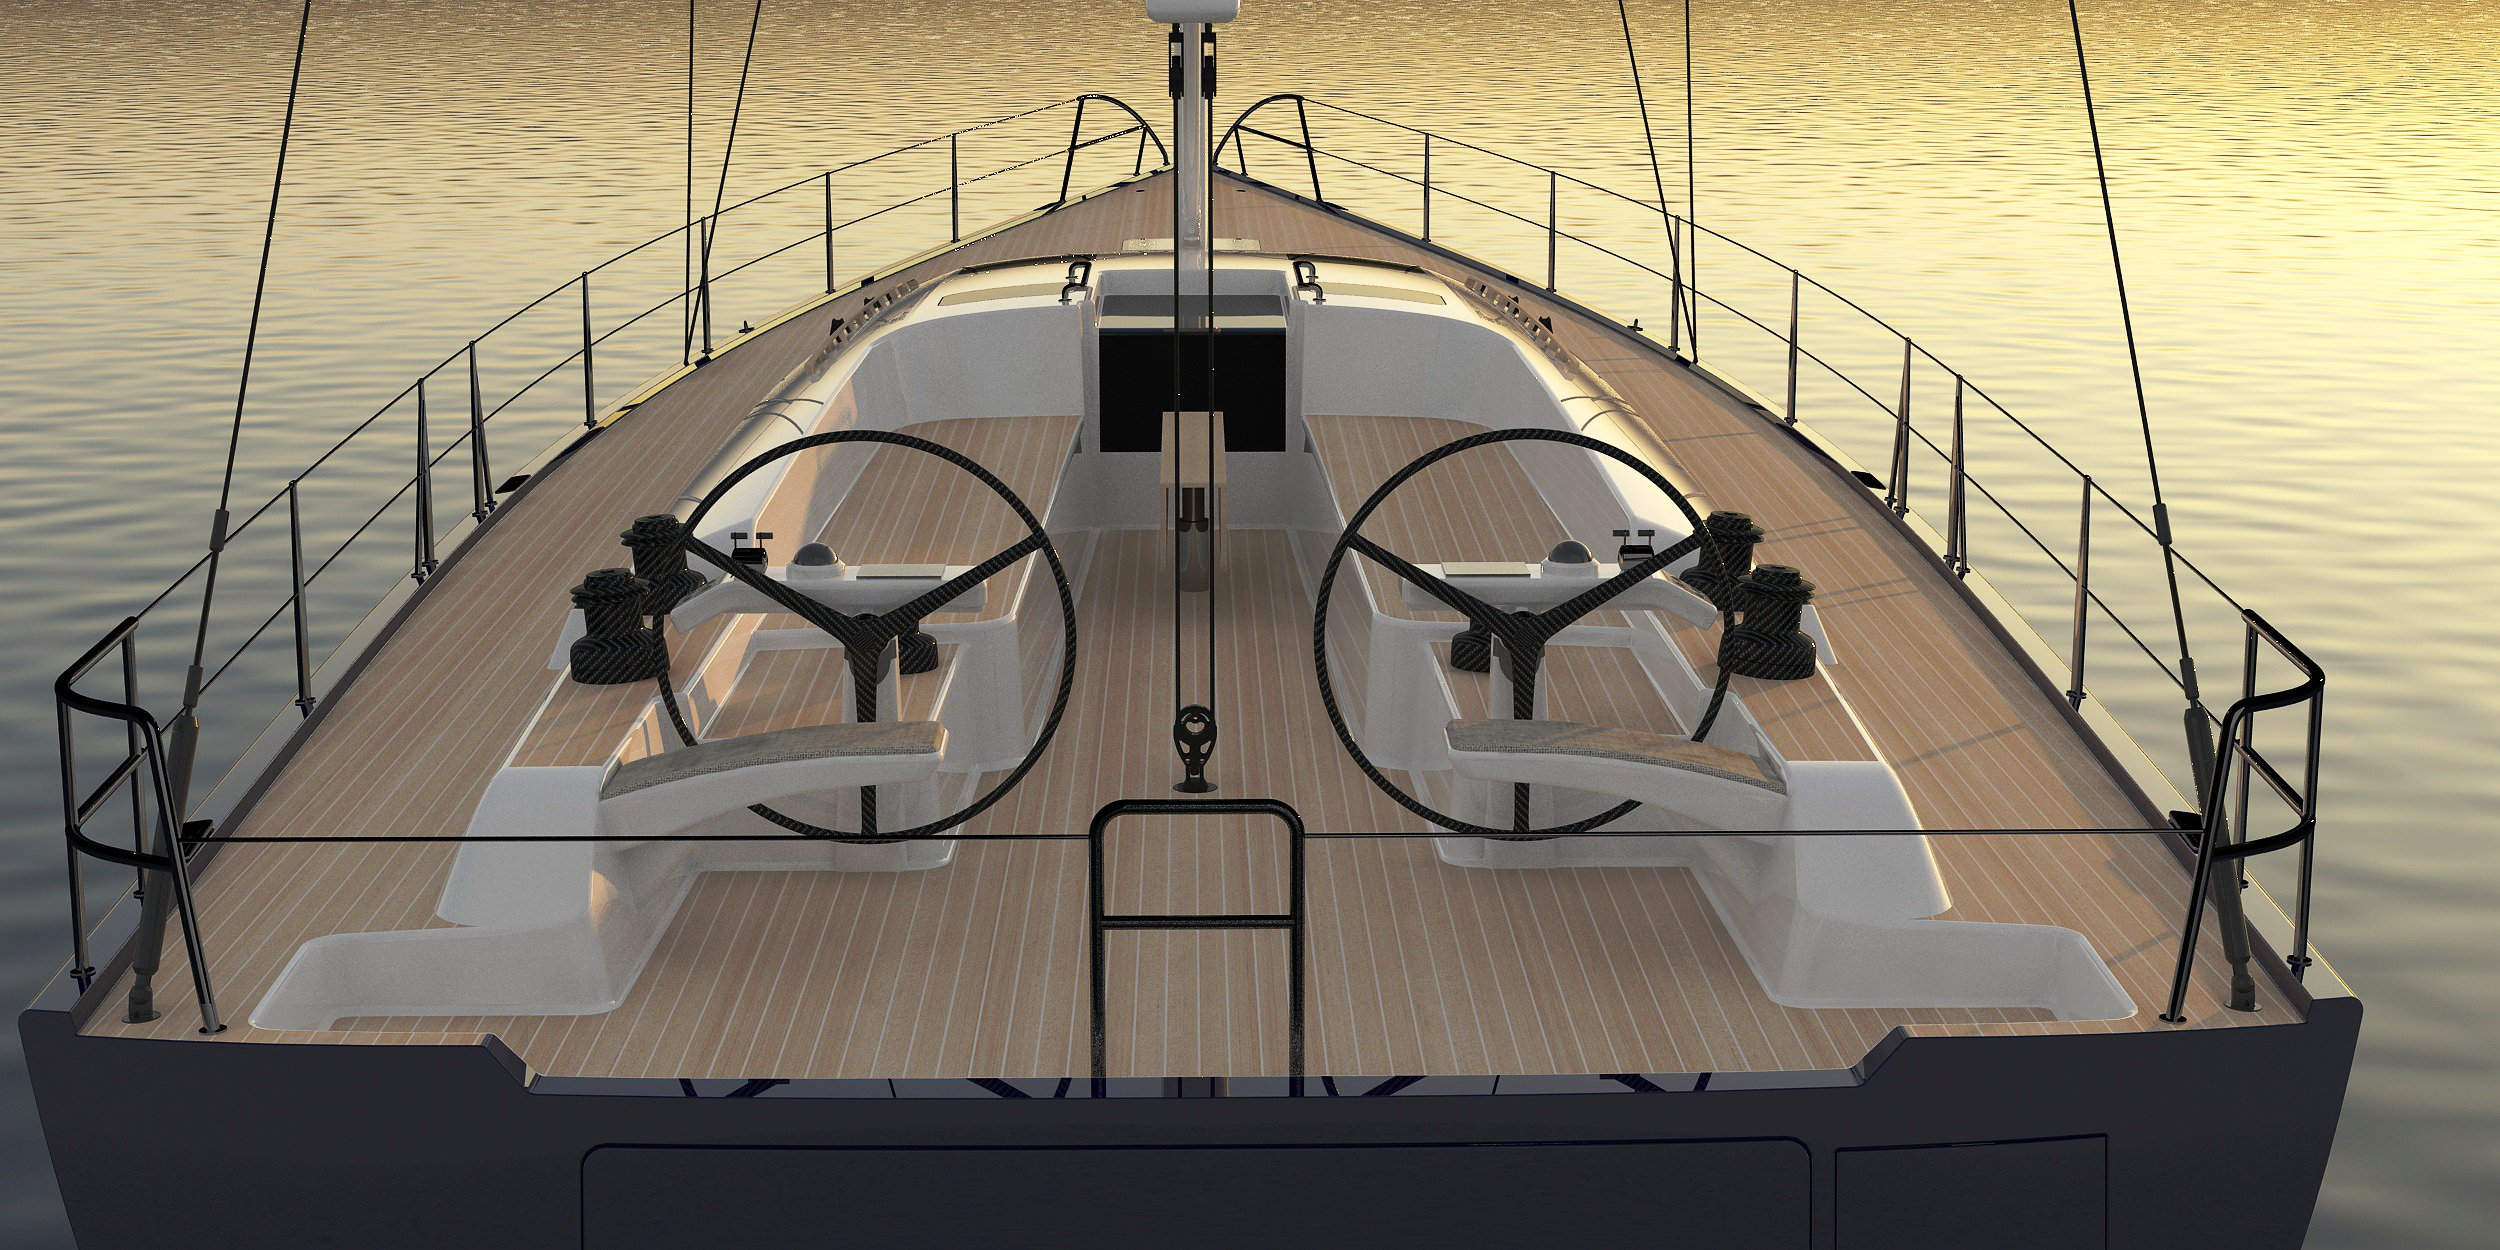 Hylas 60 Forward Stateroom cockpit configuration